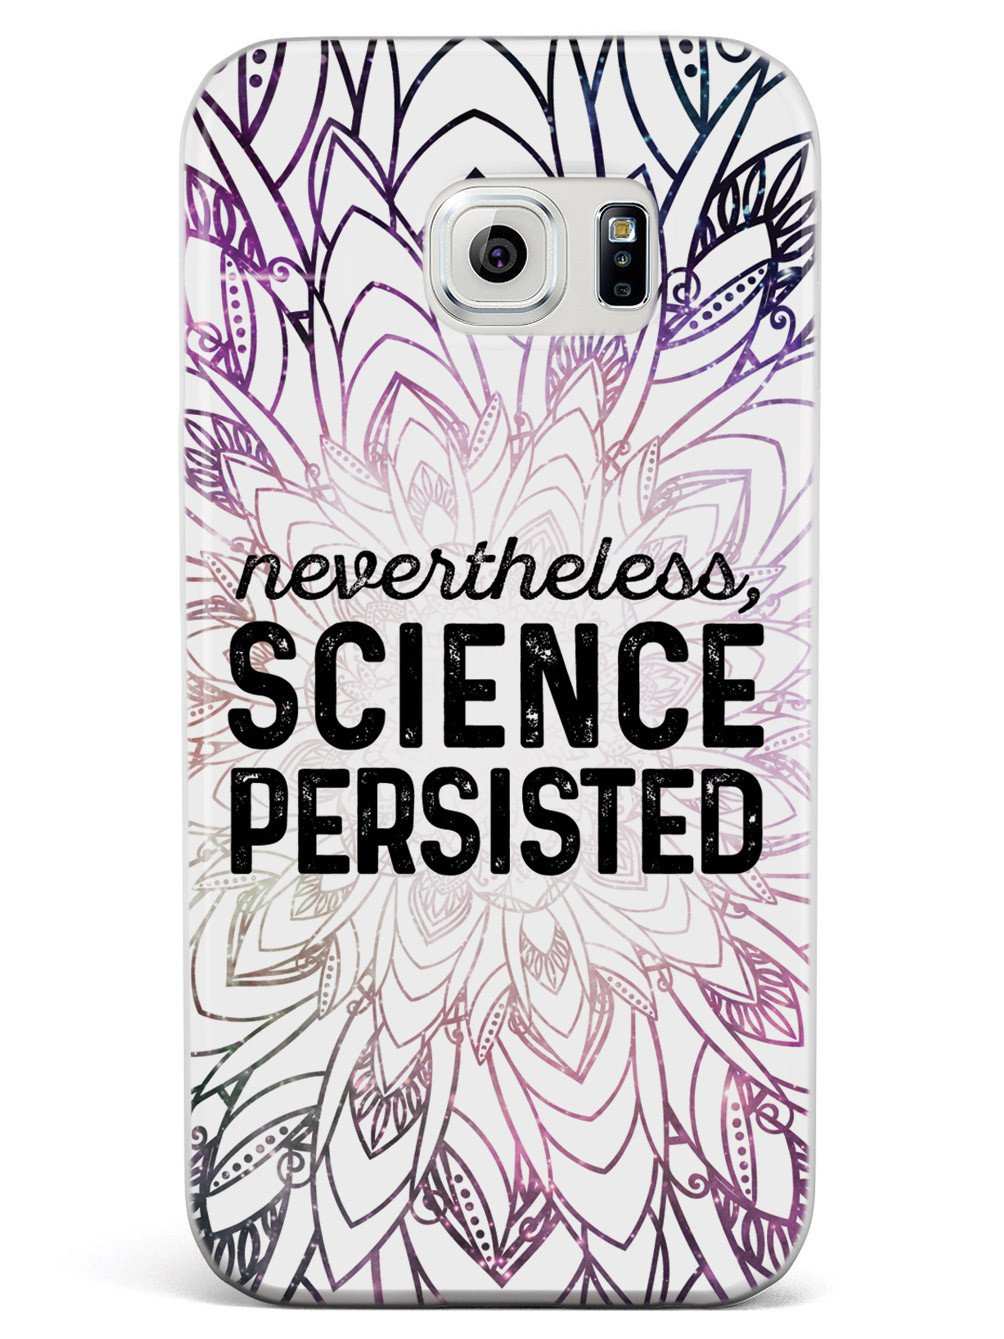 Nevertheless, Science Persisted Case - pipercleo.com